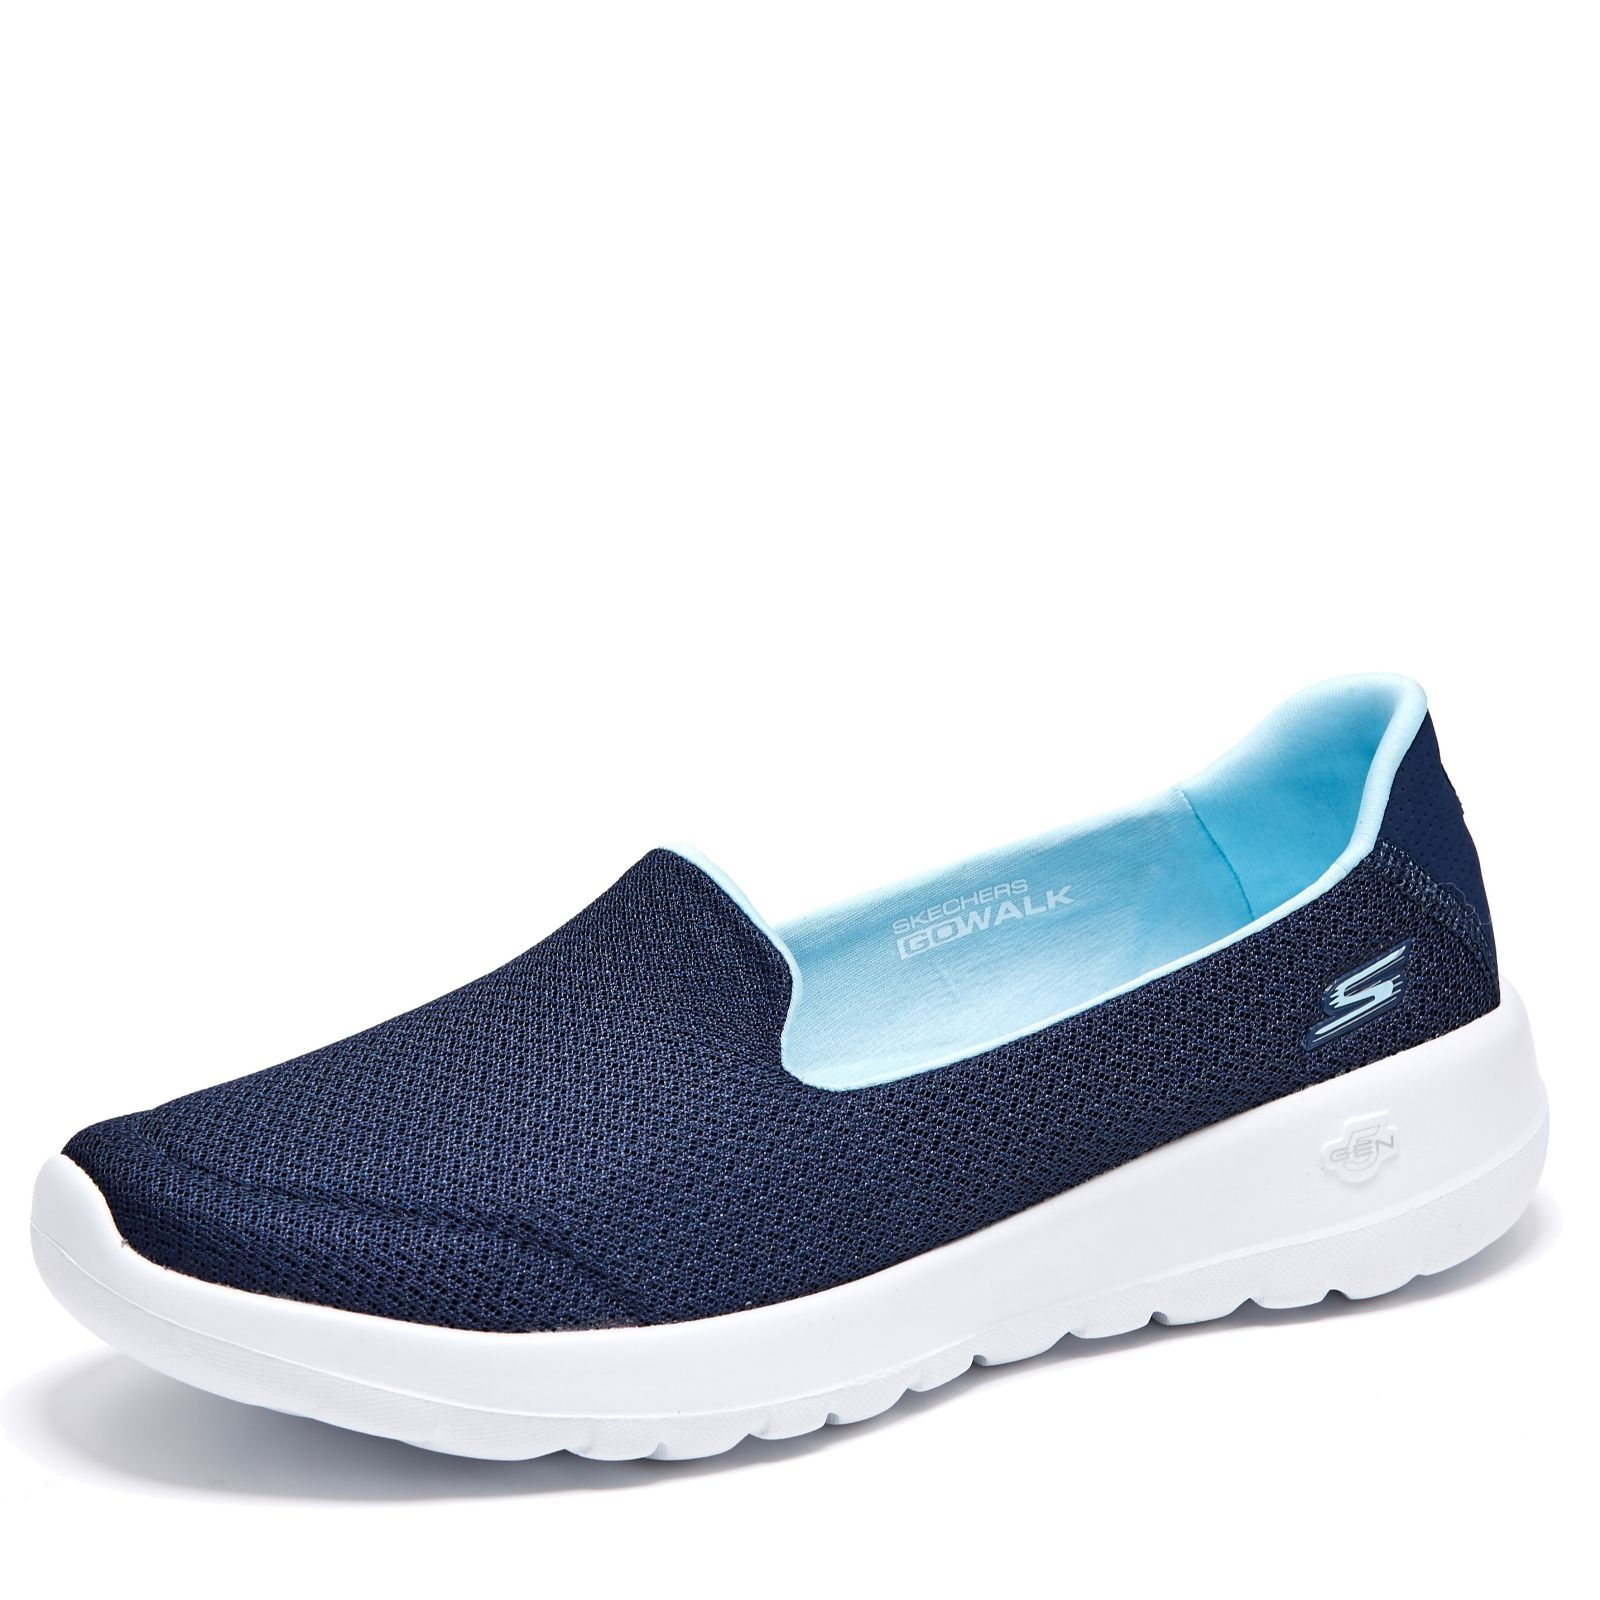 7cf9a3a6330 Skechers GOwalk Joy Slip On Shoe with GOGA MAX Insole - QVC UK